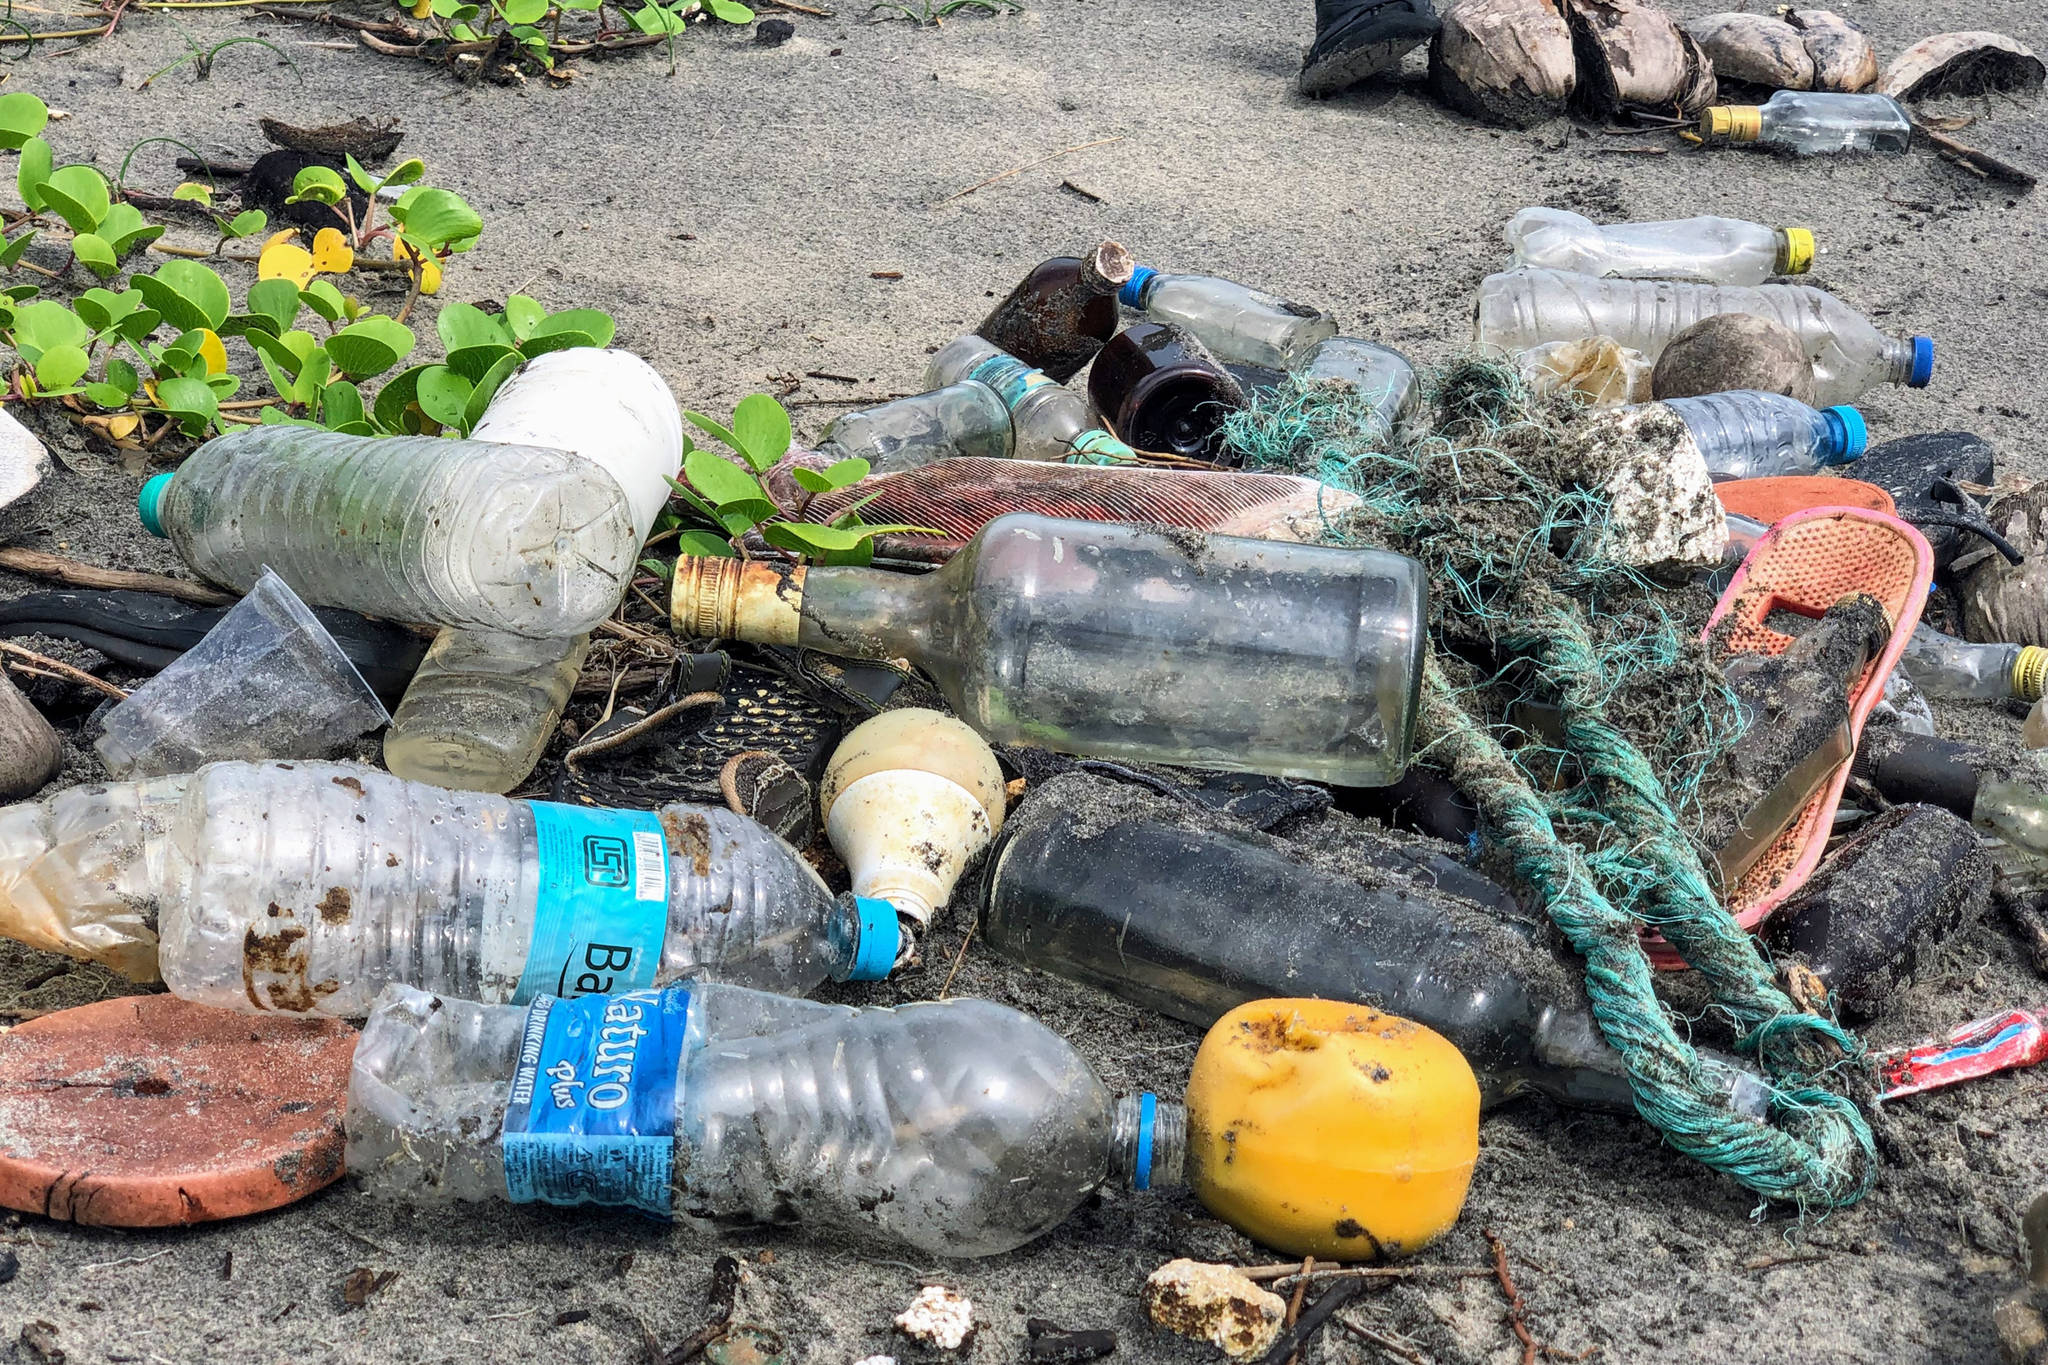 Remembering the effects of plastics